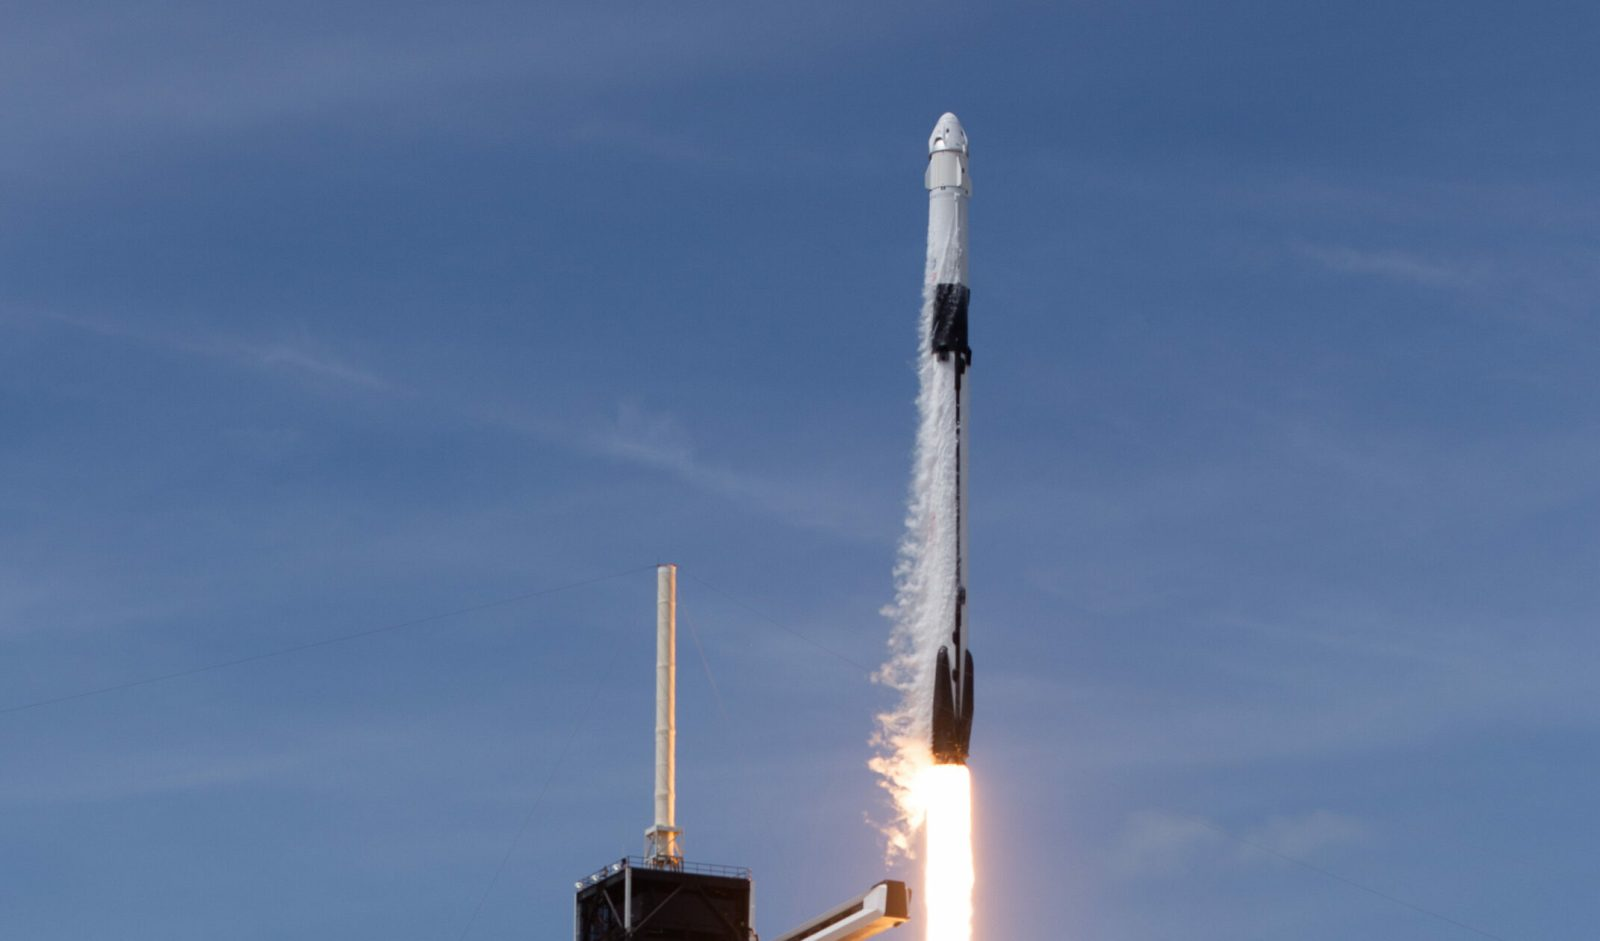 Varda Space To Launch The Manufacturing Satellite With SpaceX